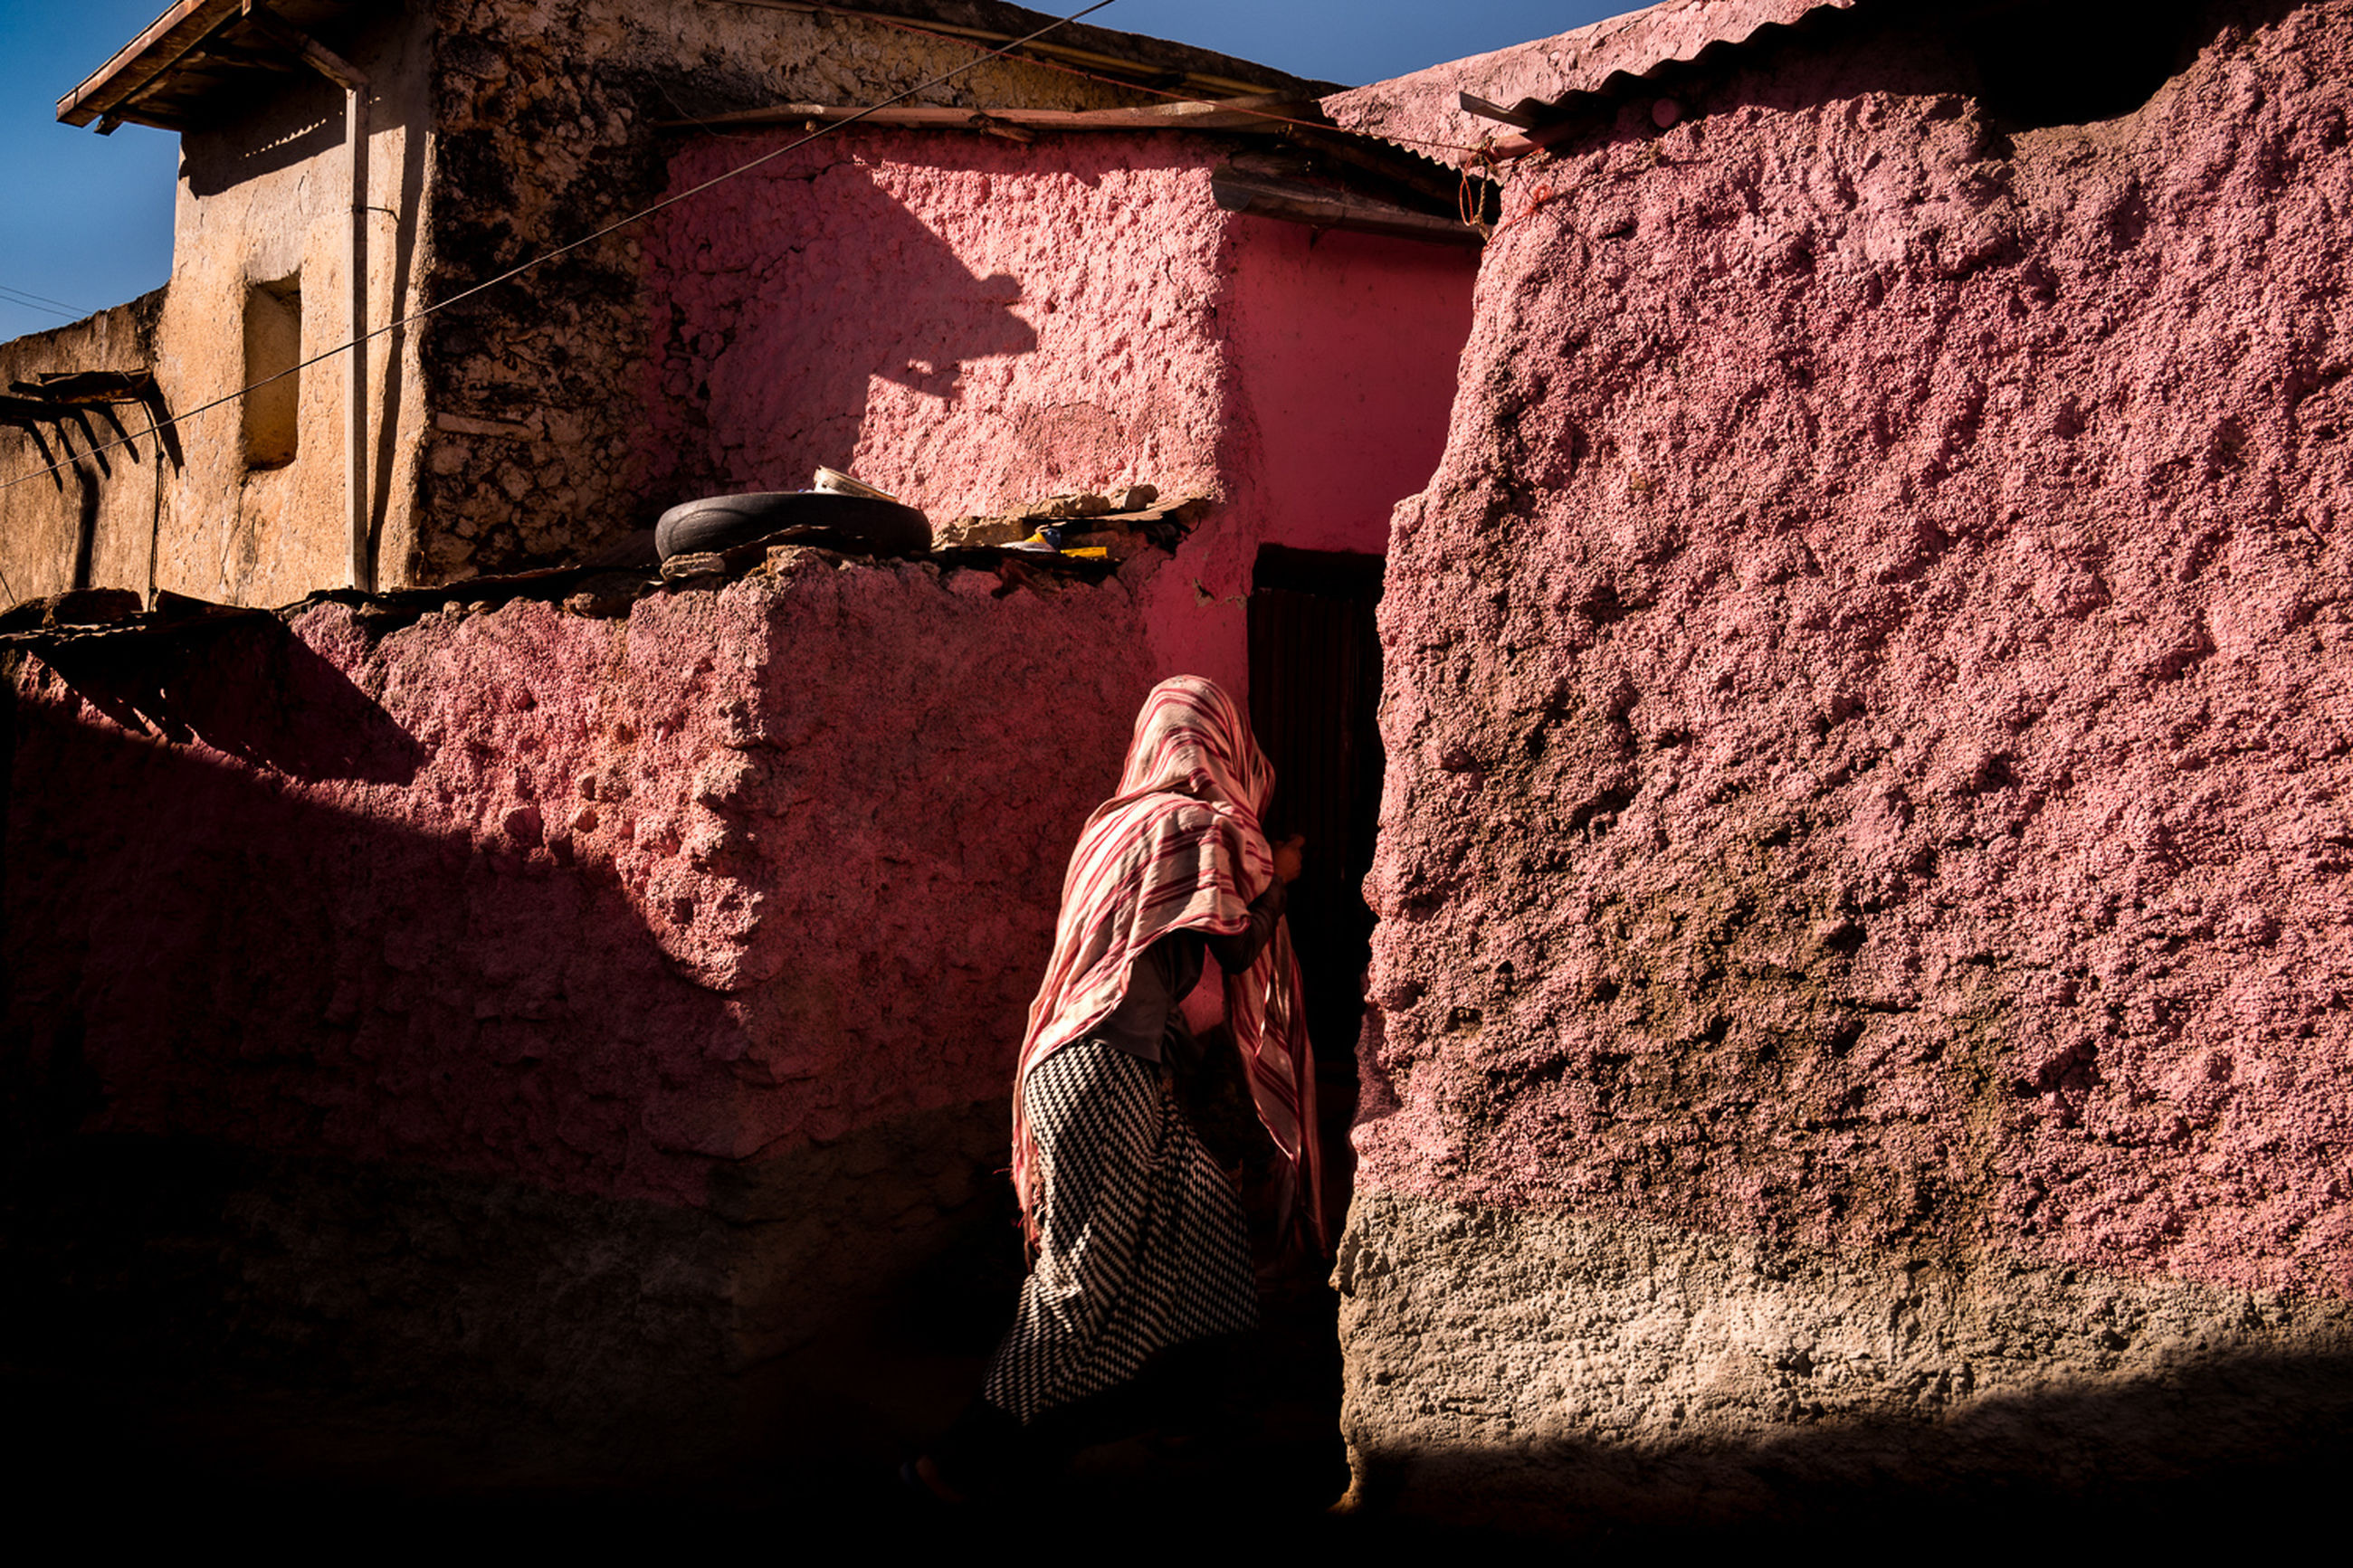 built structure, architecture, building exterior, day, sunlight, clothing, textile, nature, no people, building, rear view, wall - building feature, wall, outdoors, shadow, drying, house